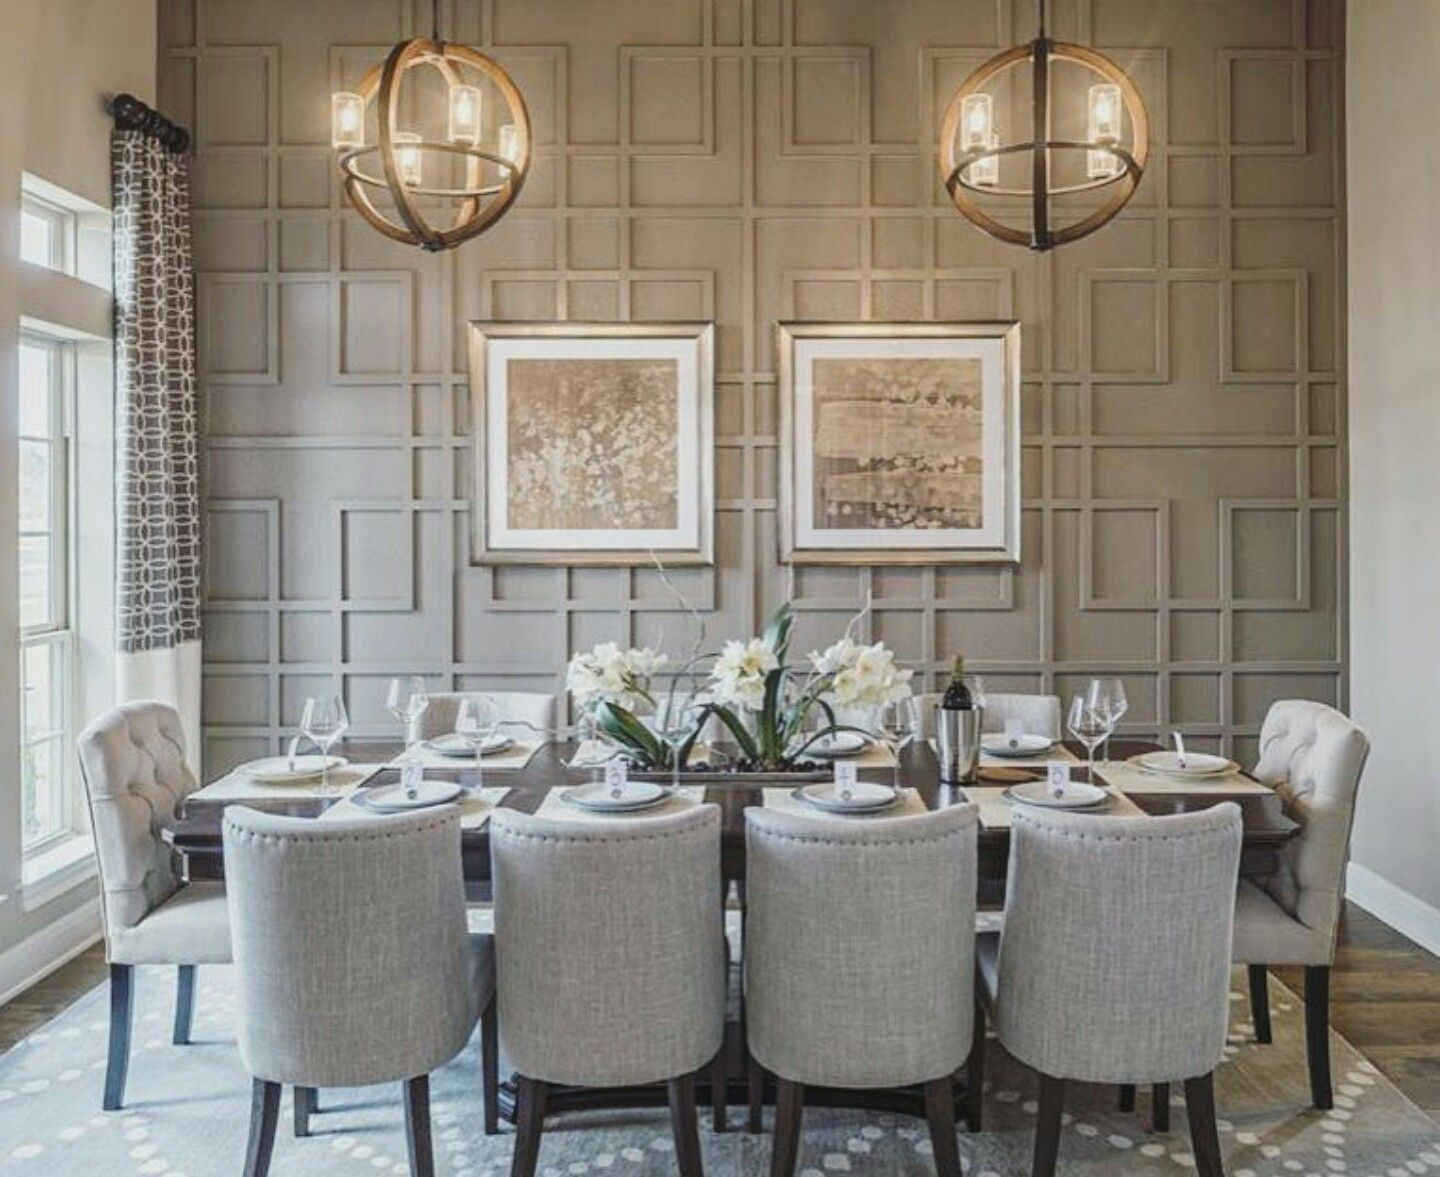 wallpaper accent wall dining room | simply dining room with a nice accent wall or wallpaper ...